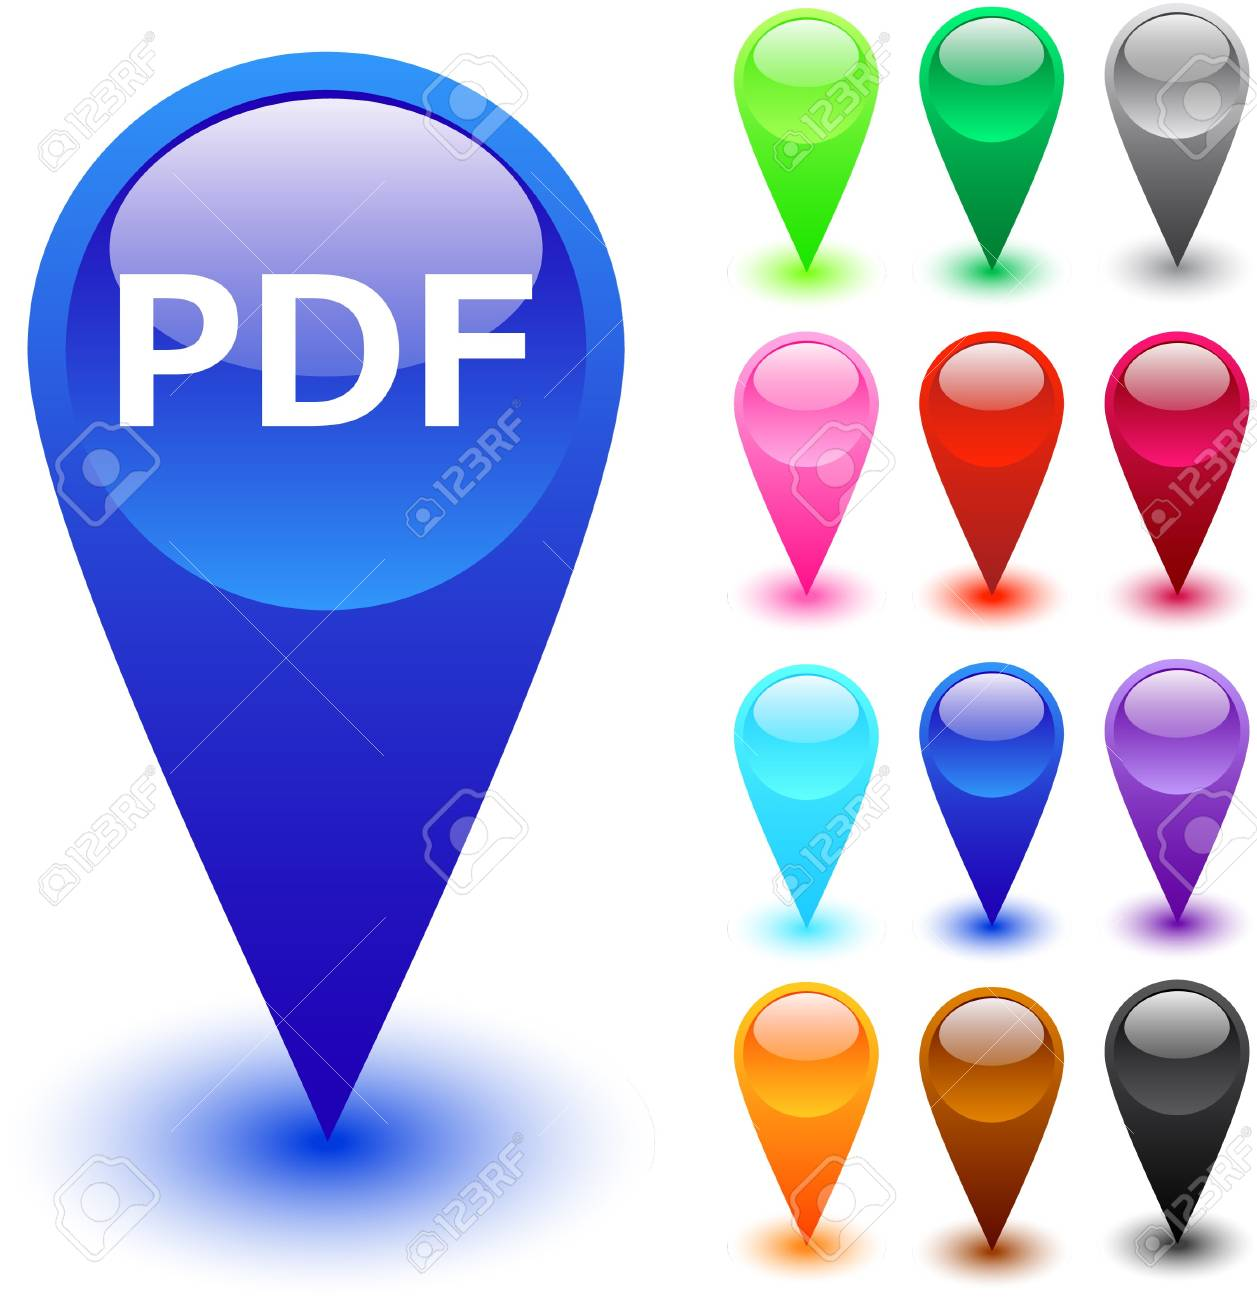 PDF glossy web buttons. Stock Vector - 7375383